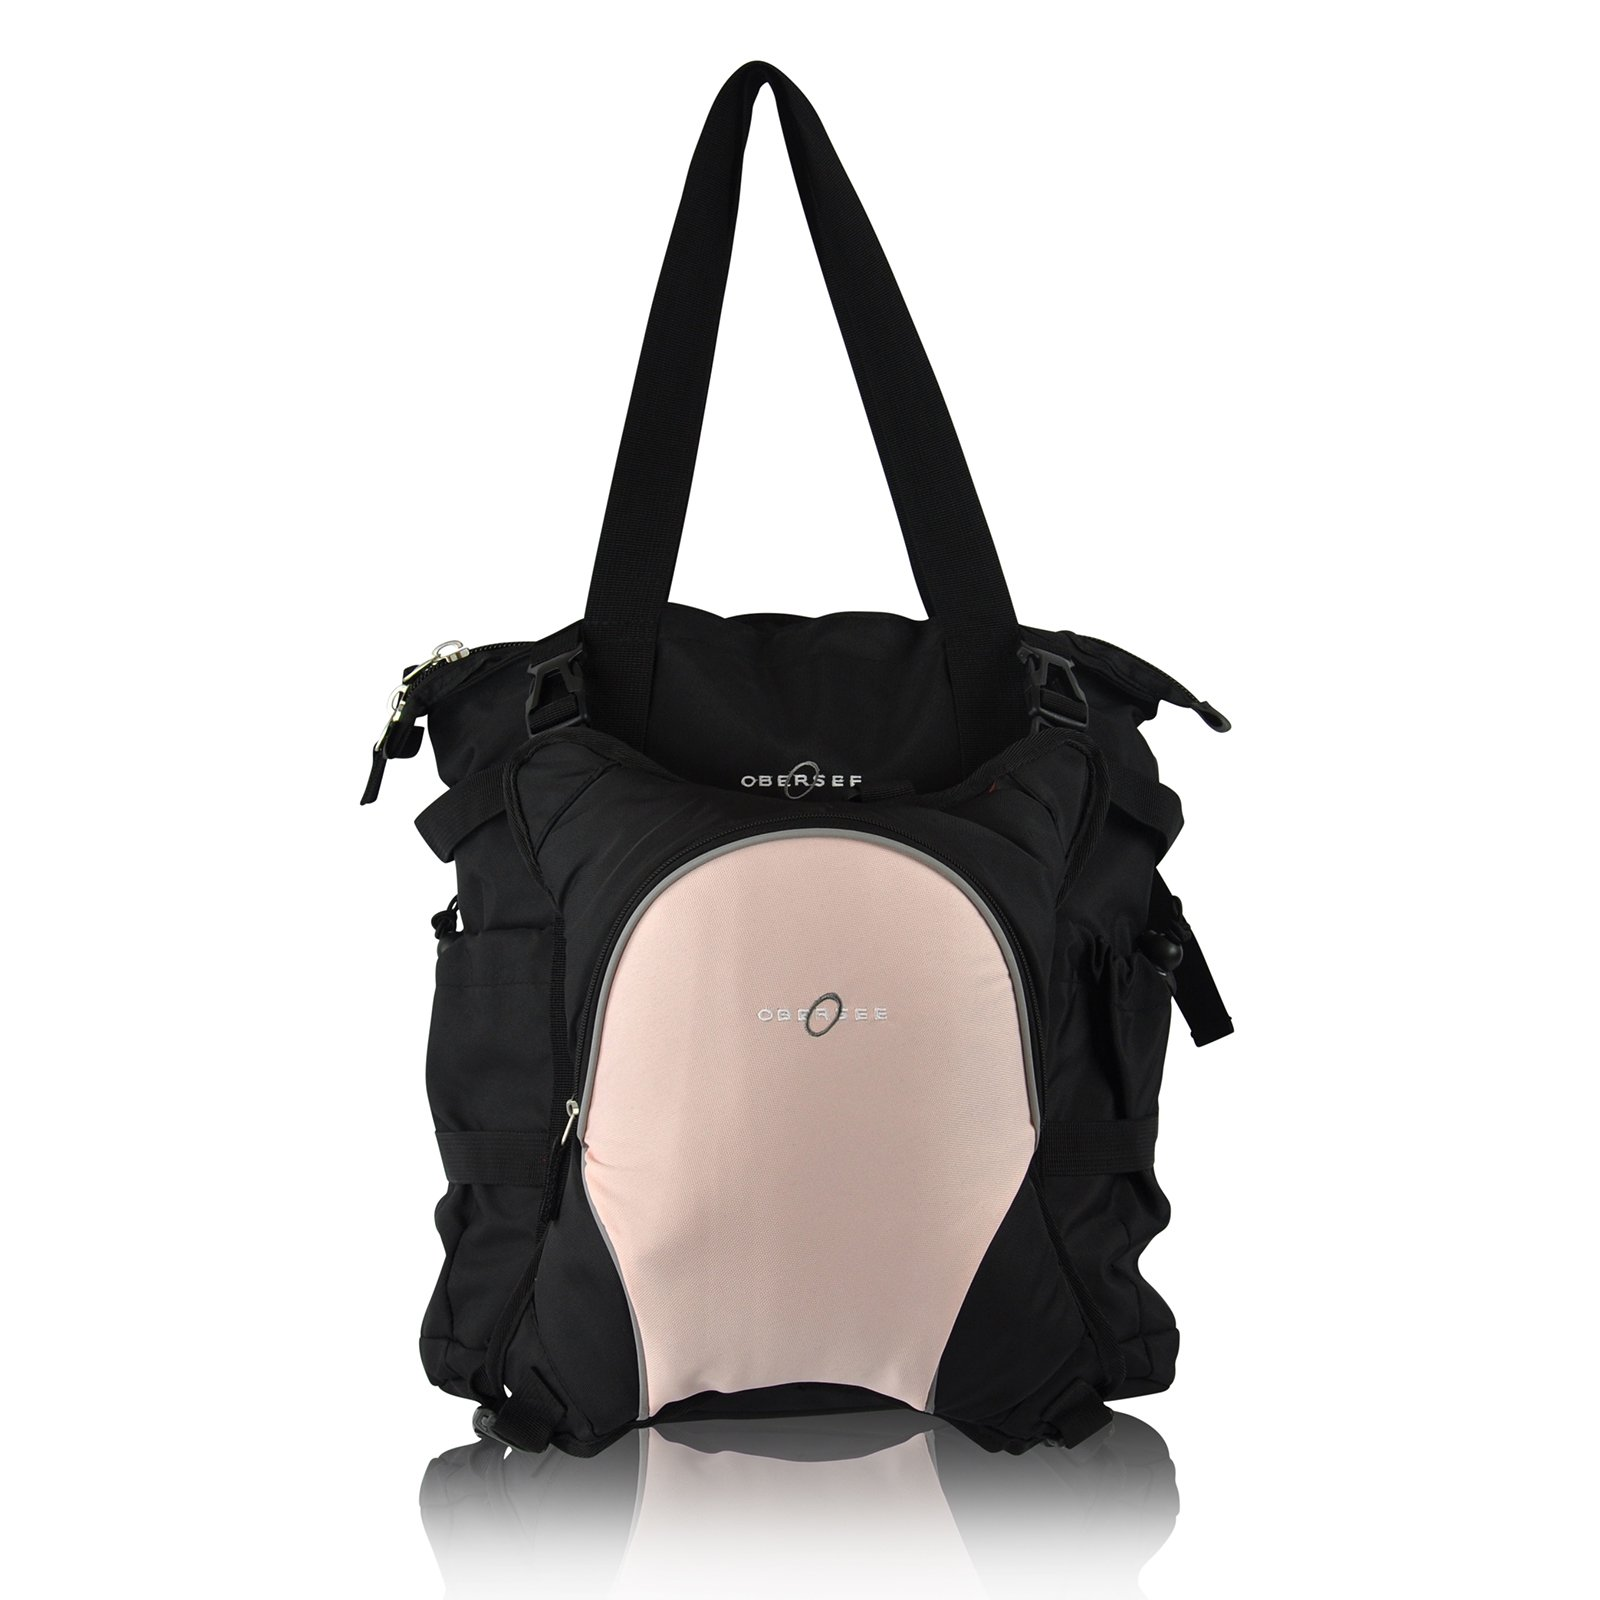 Obersee Innsbruck Diaper Bag Tote with Cooler, Black/Bubble Gum